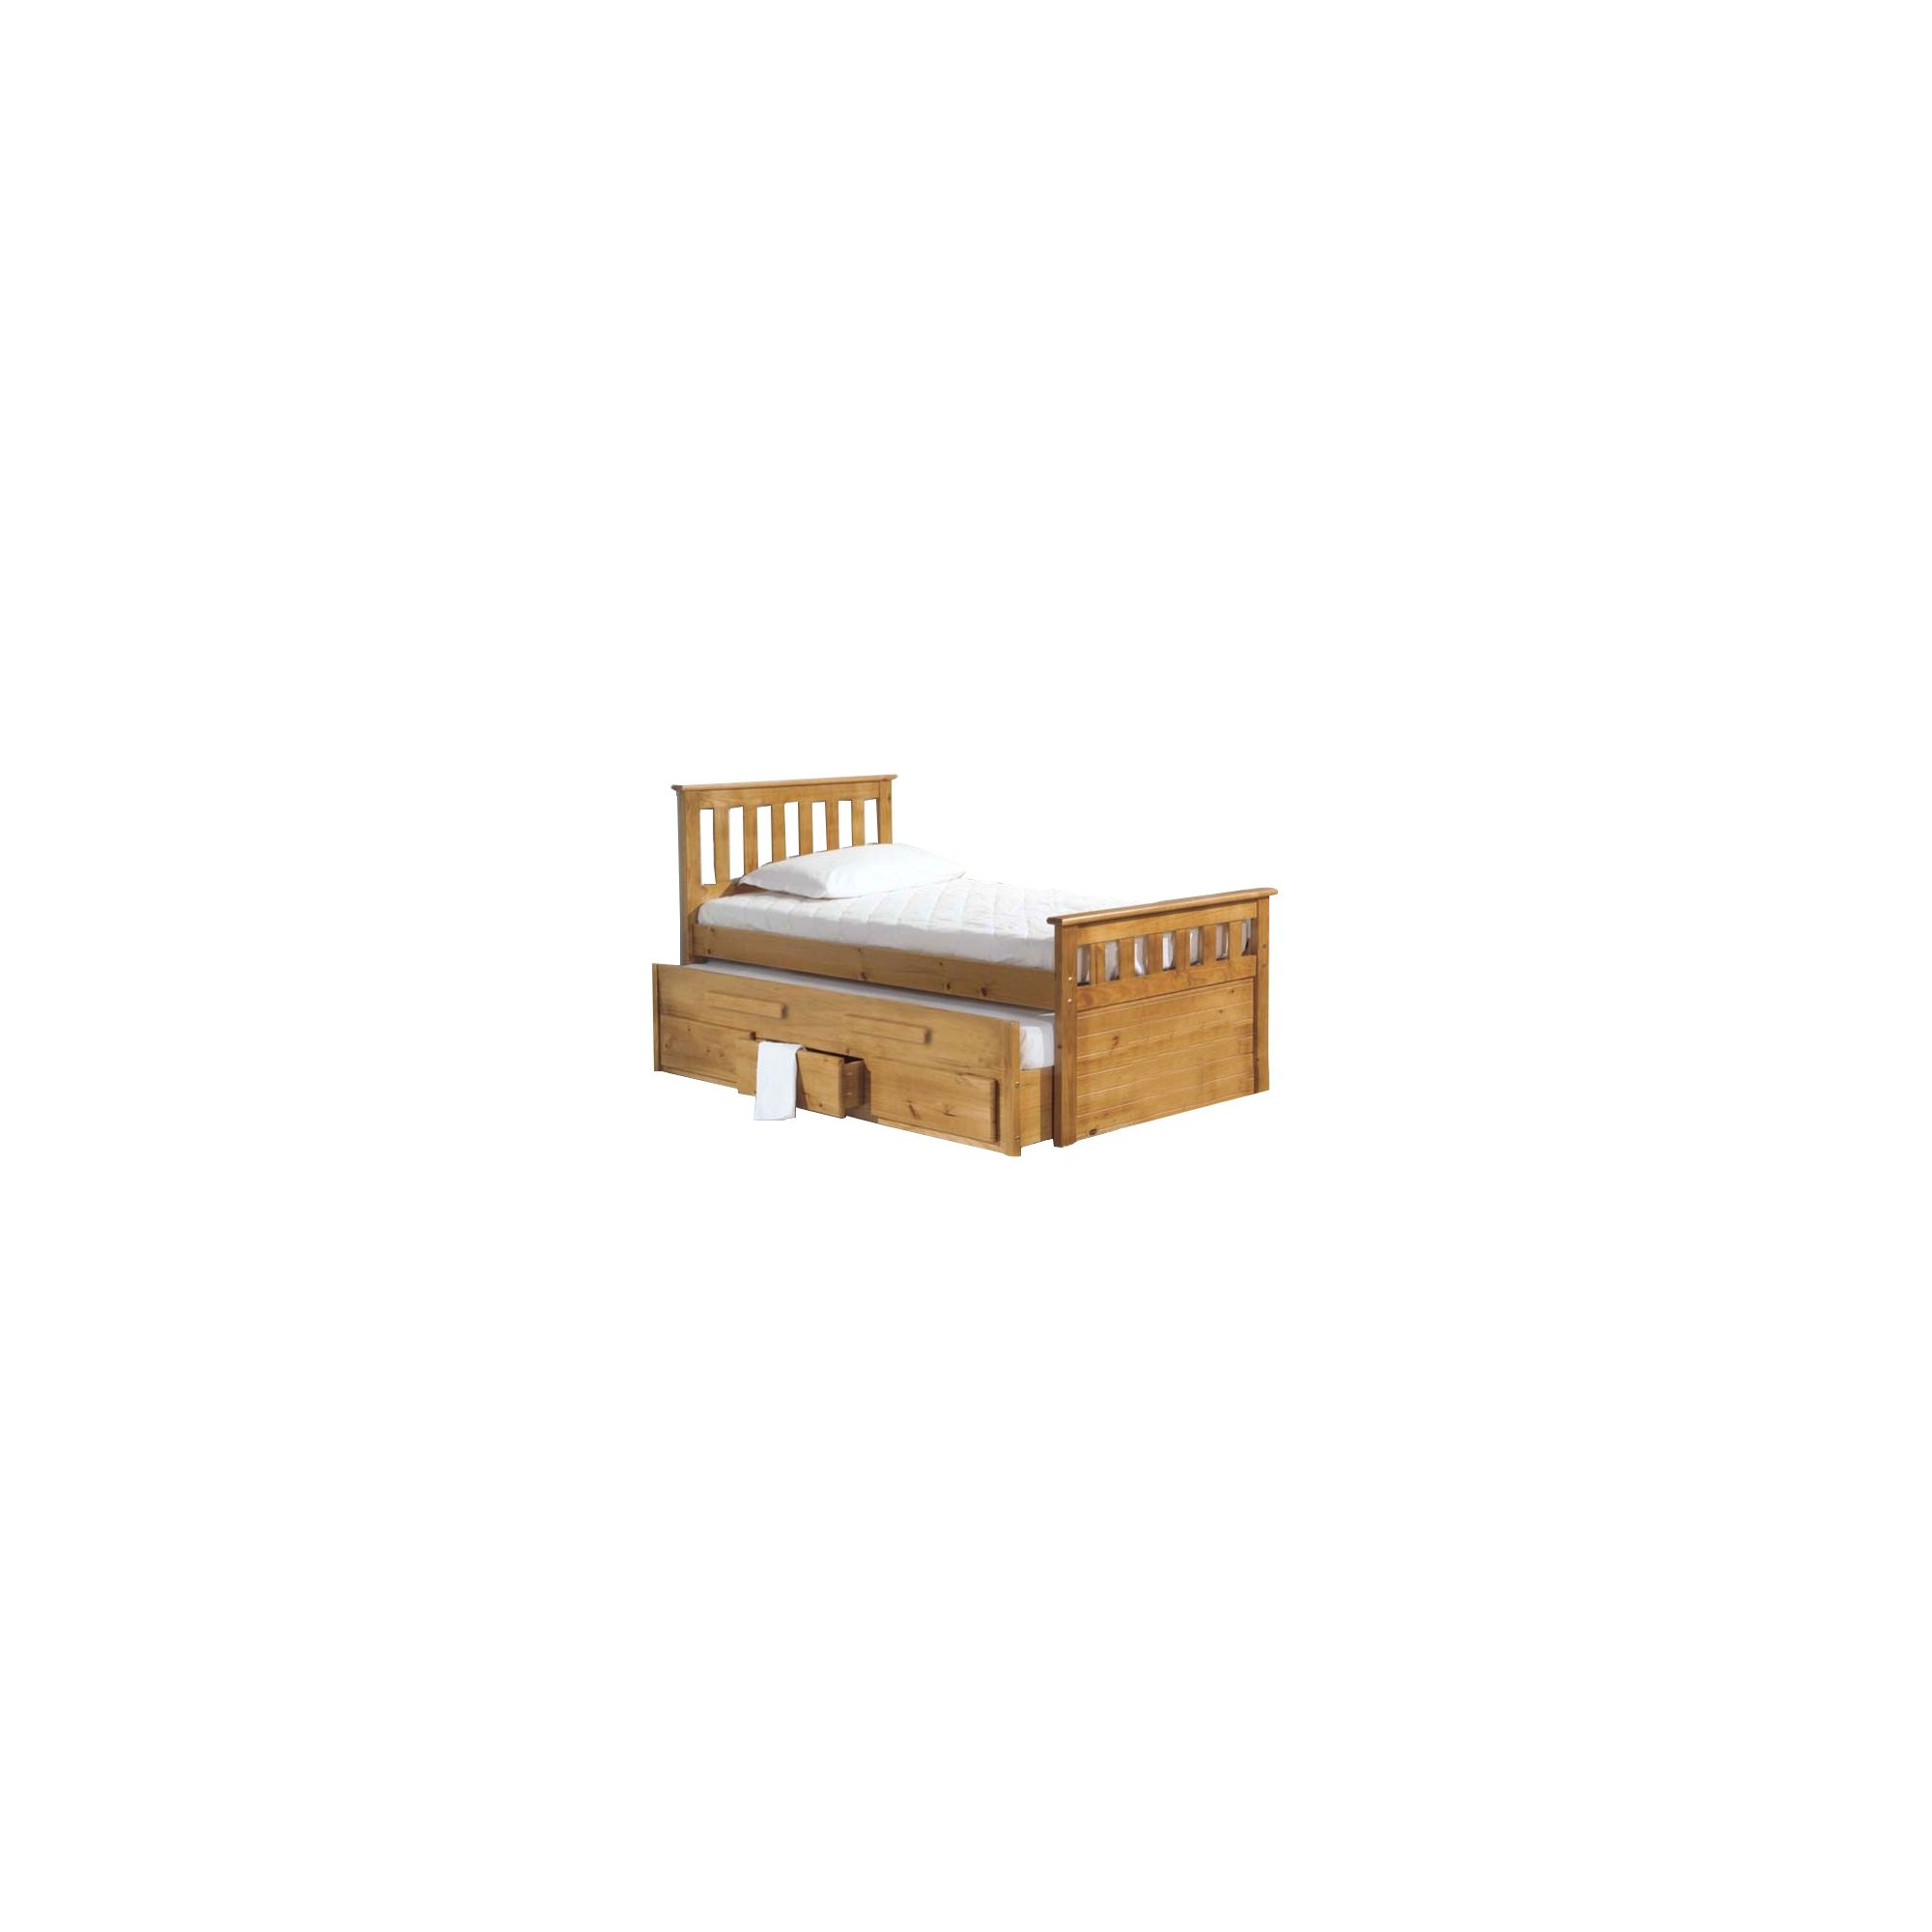 Verona Bergamo Captains Bed with Guest Bed - Antique at Tesco Direct